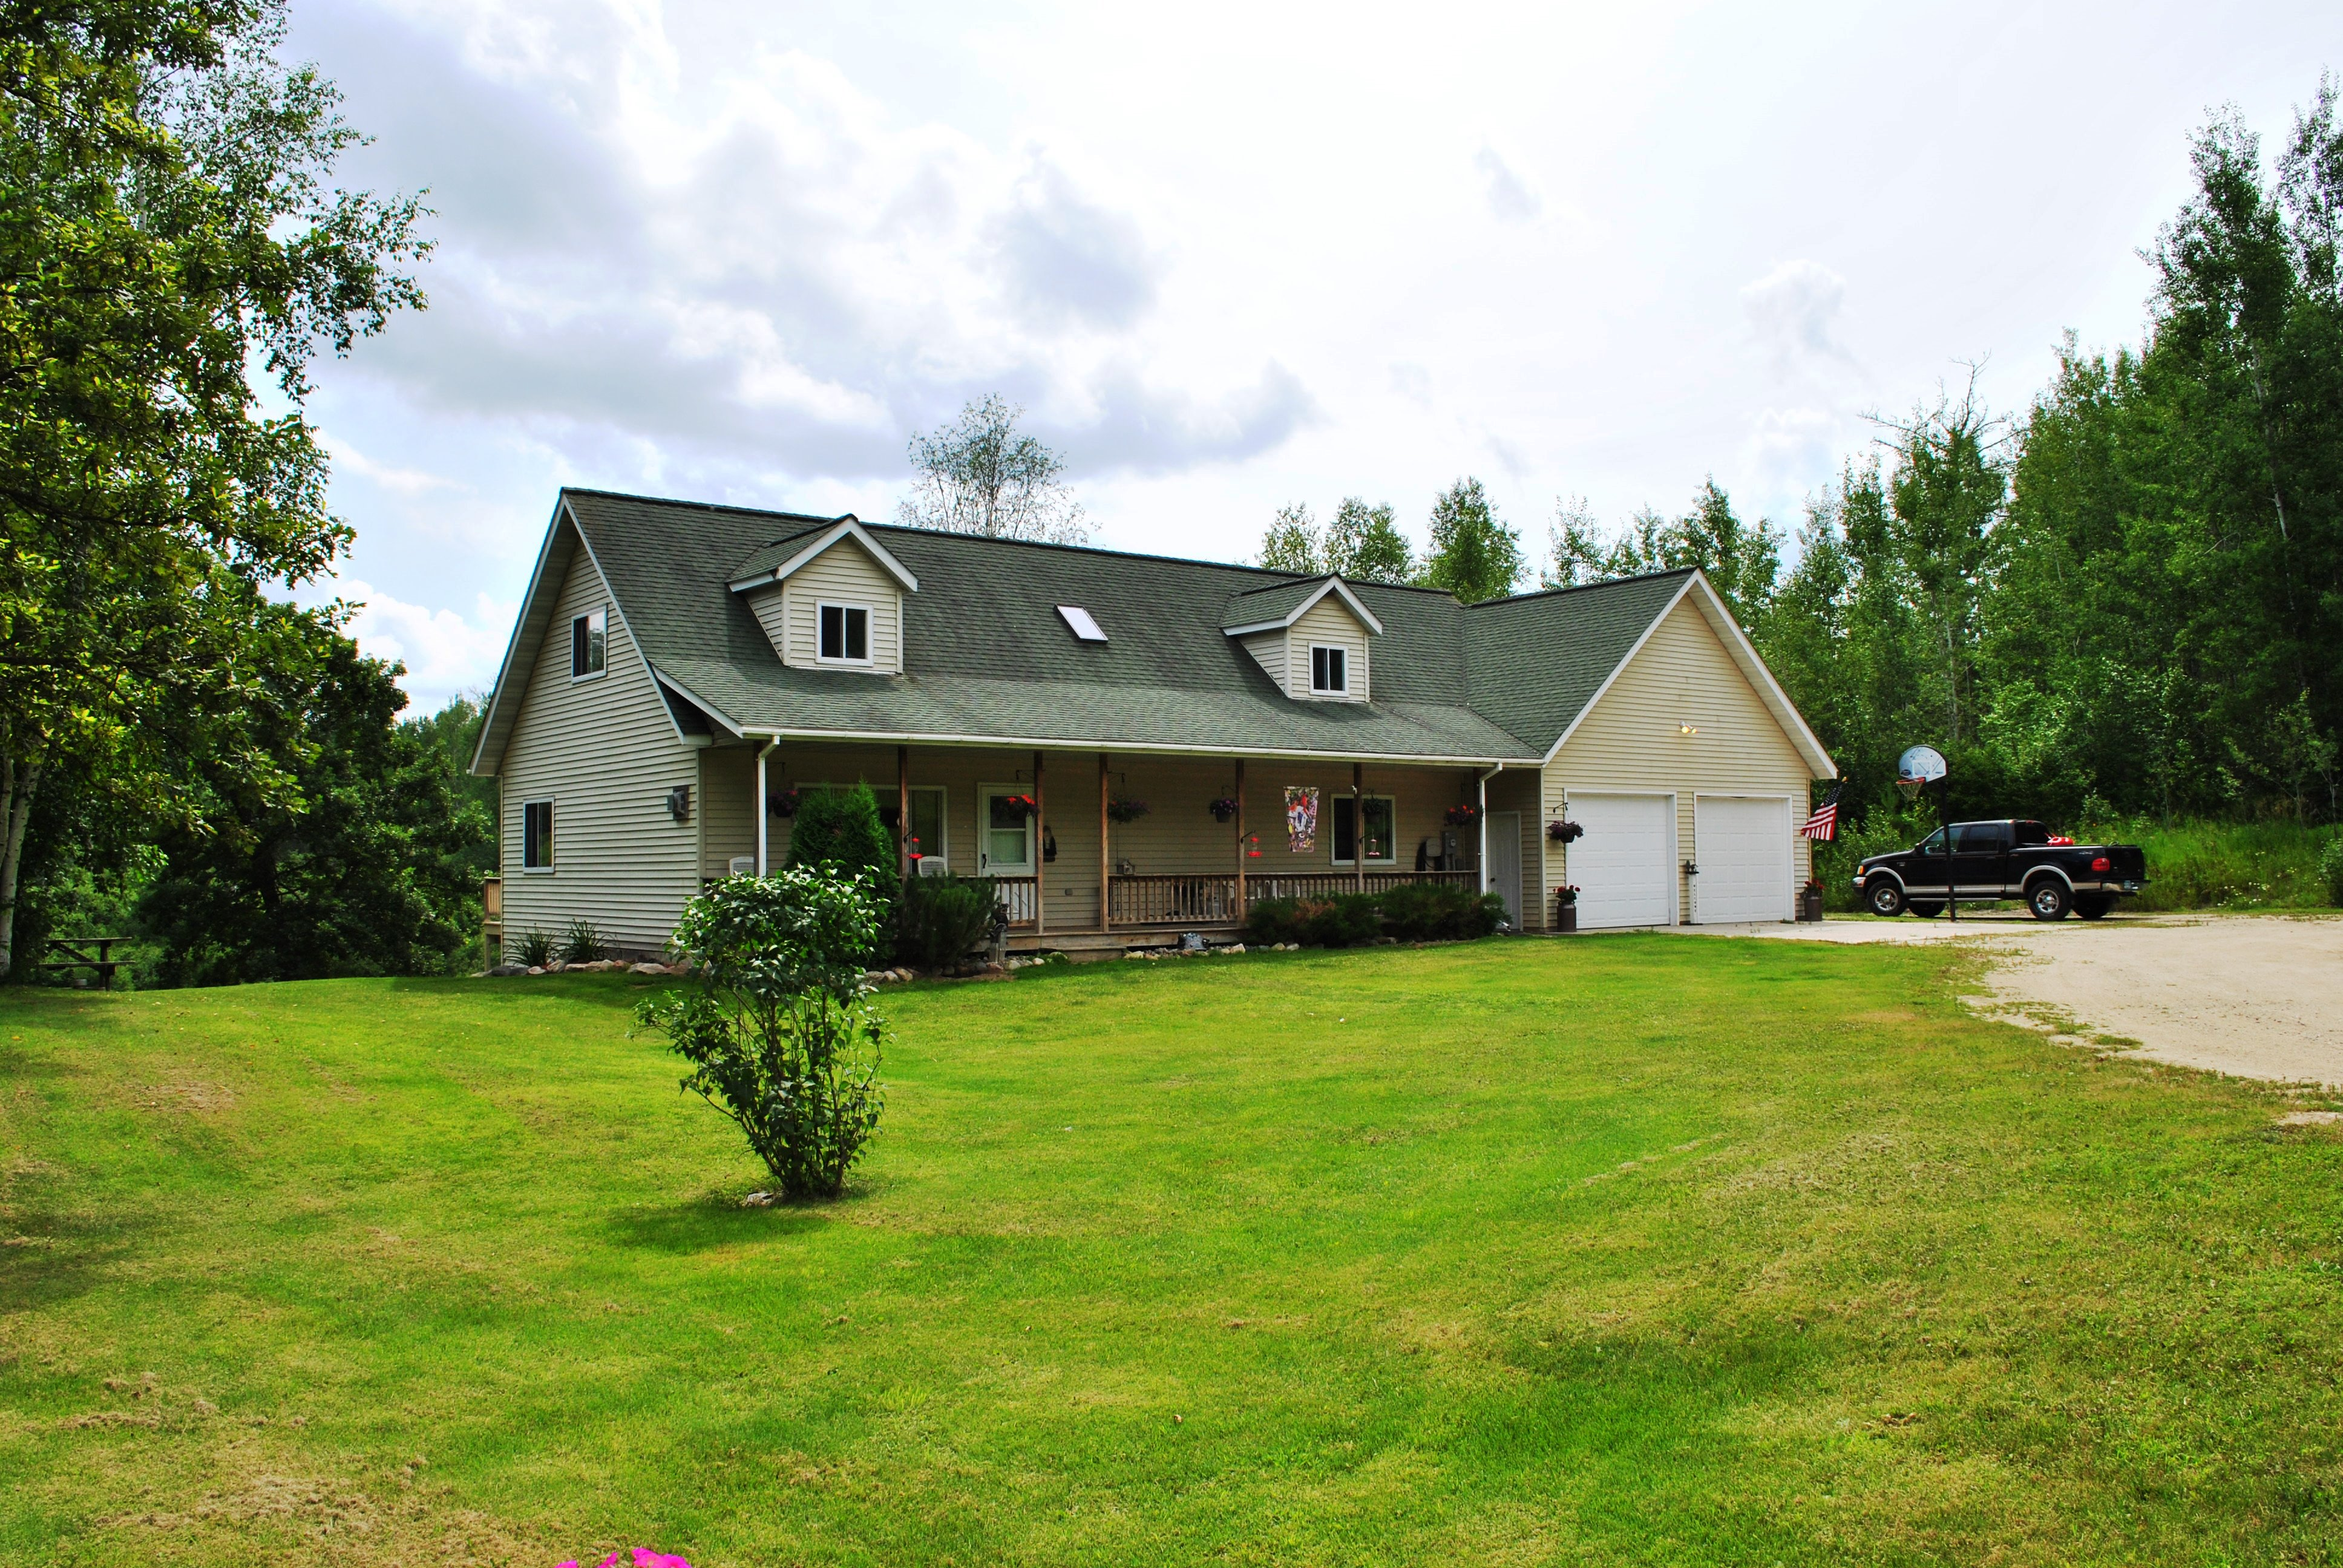 26411 State 64, Akeley, Minnesota 56433